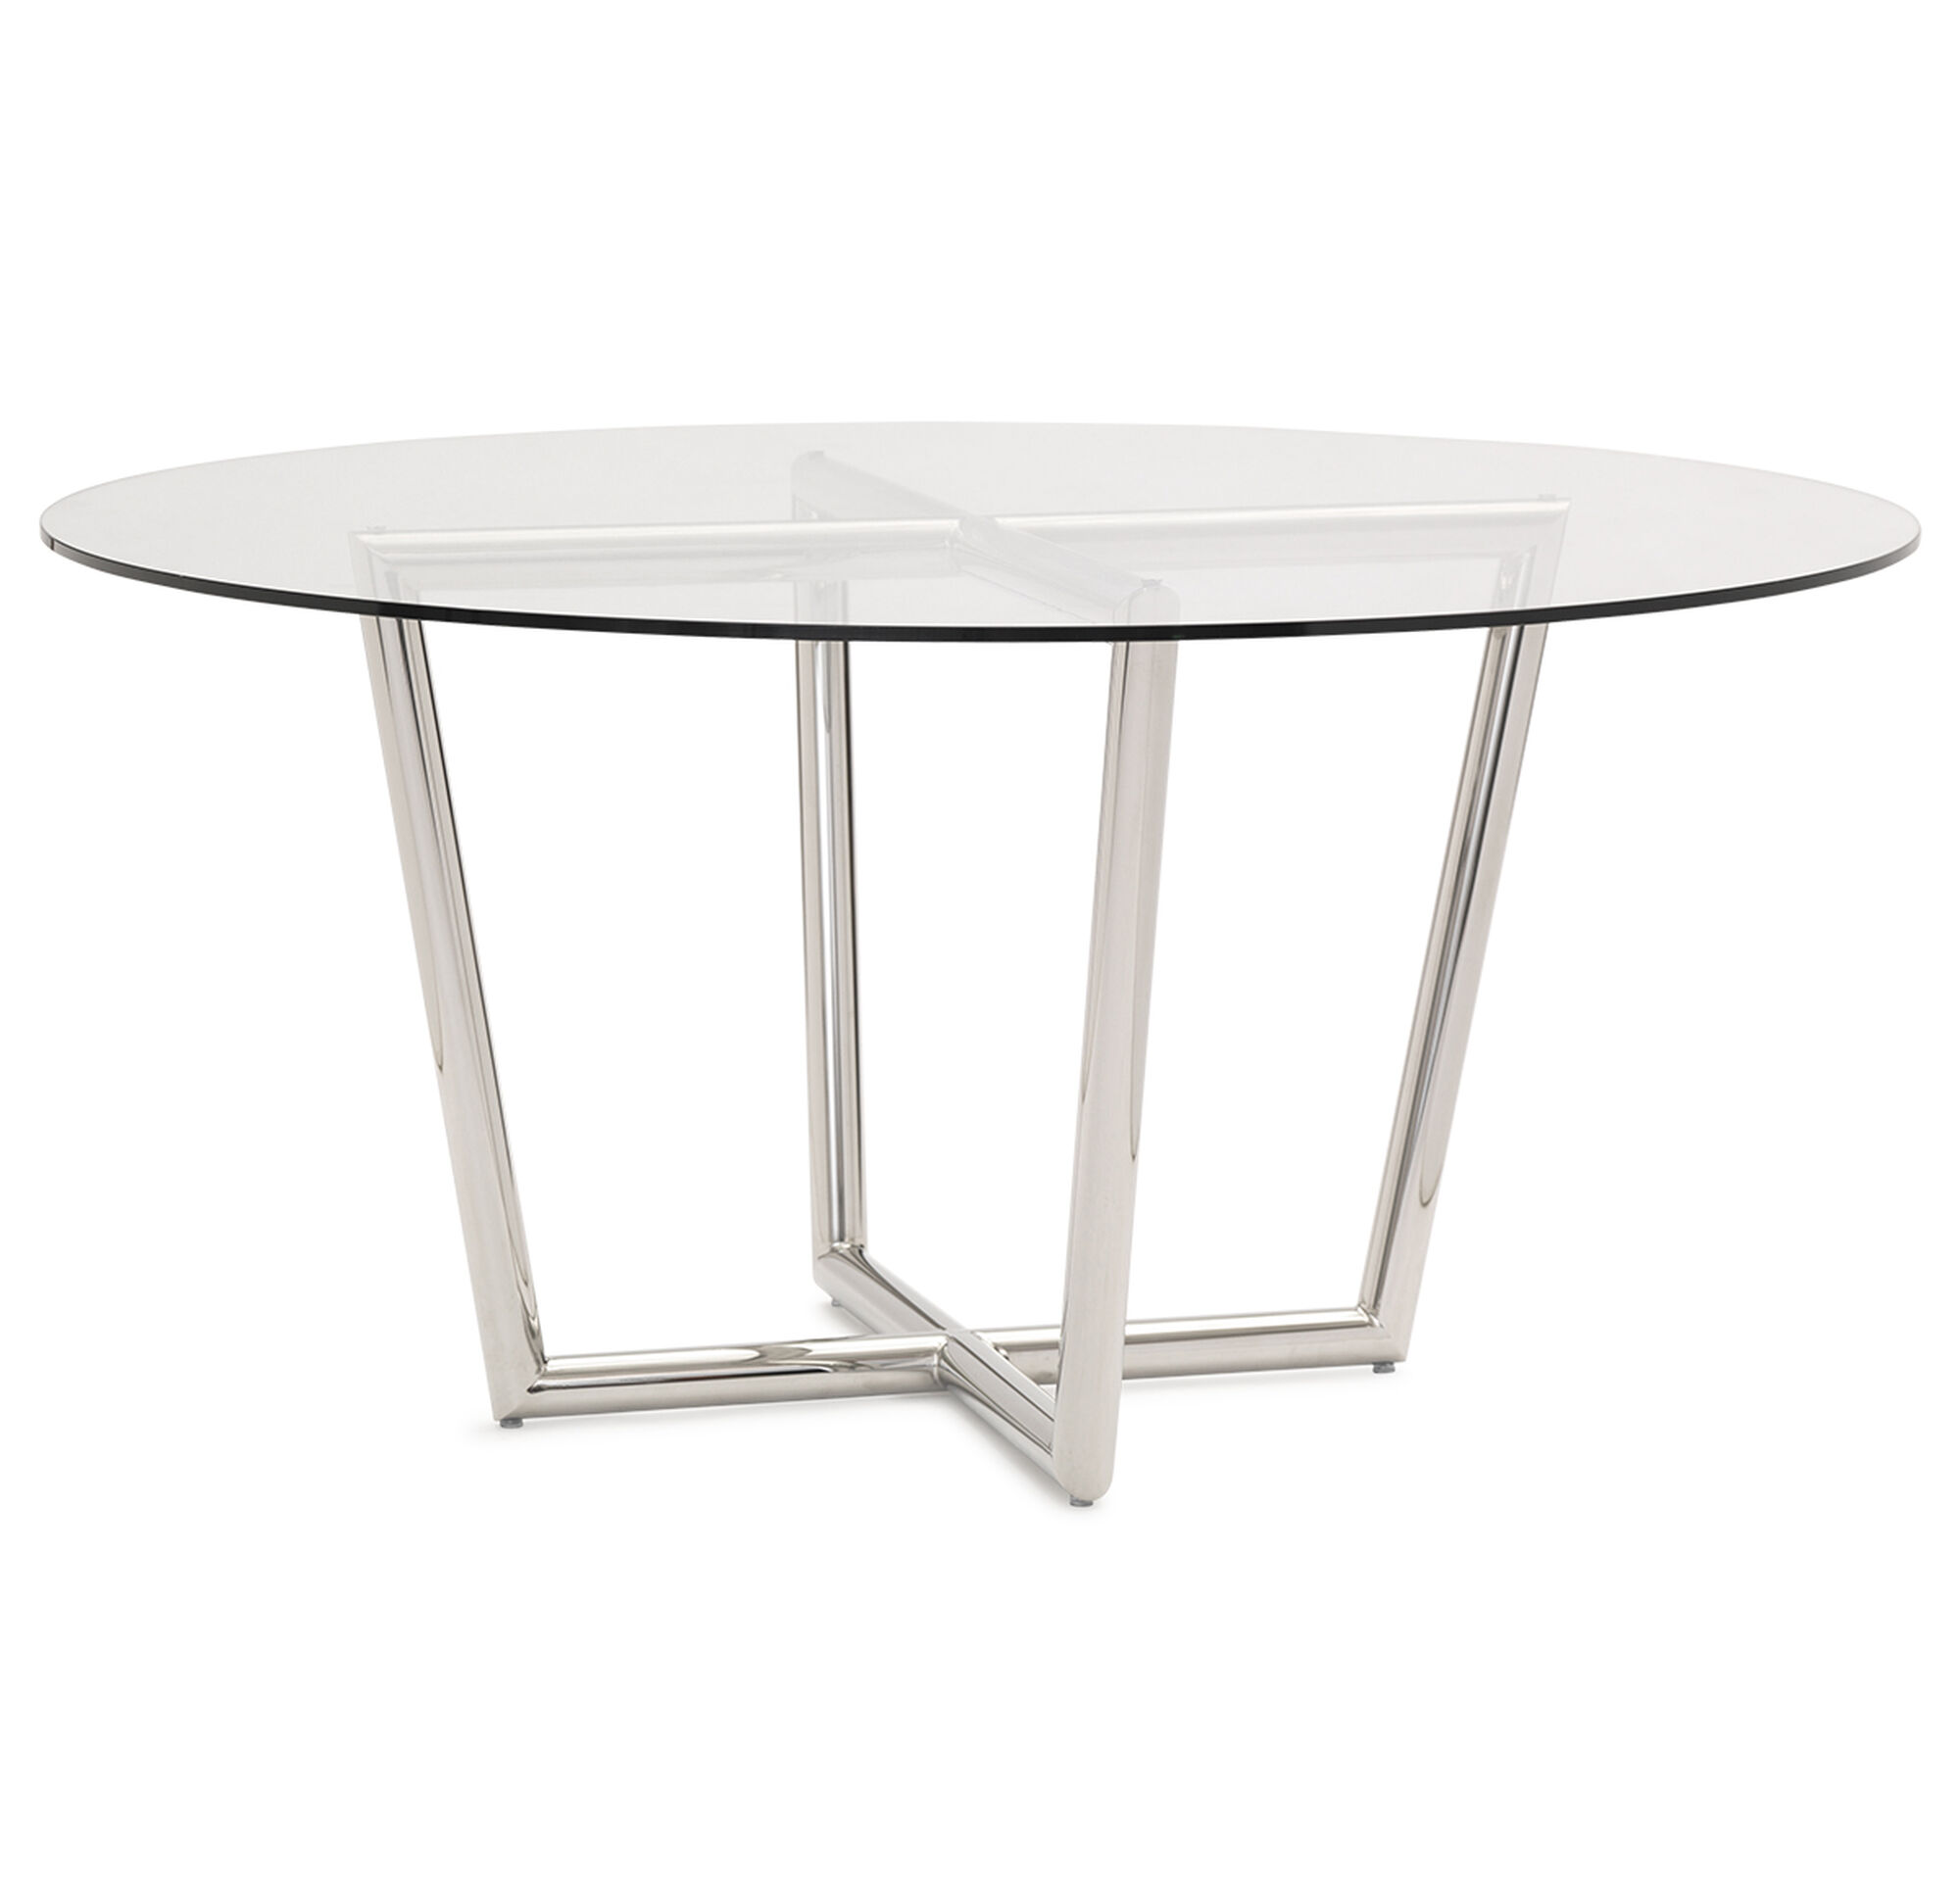 Modern Round Dining Table Polished Stainless Steel Hi Res